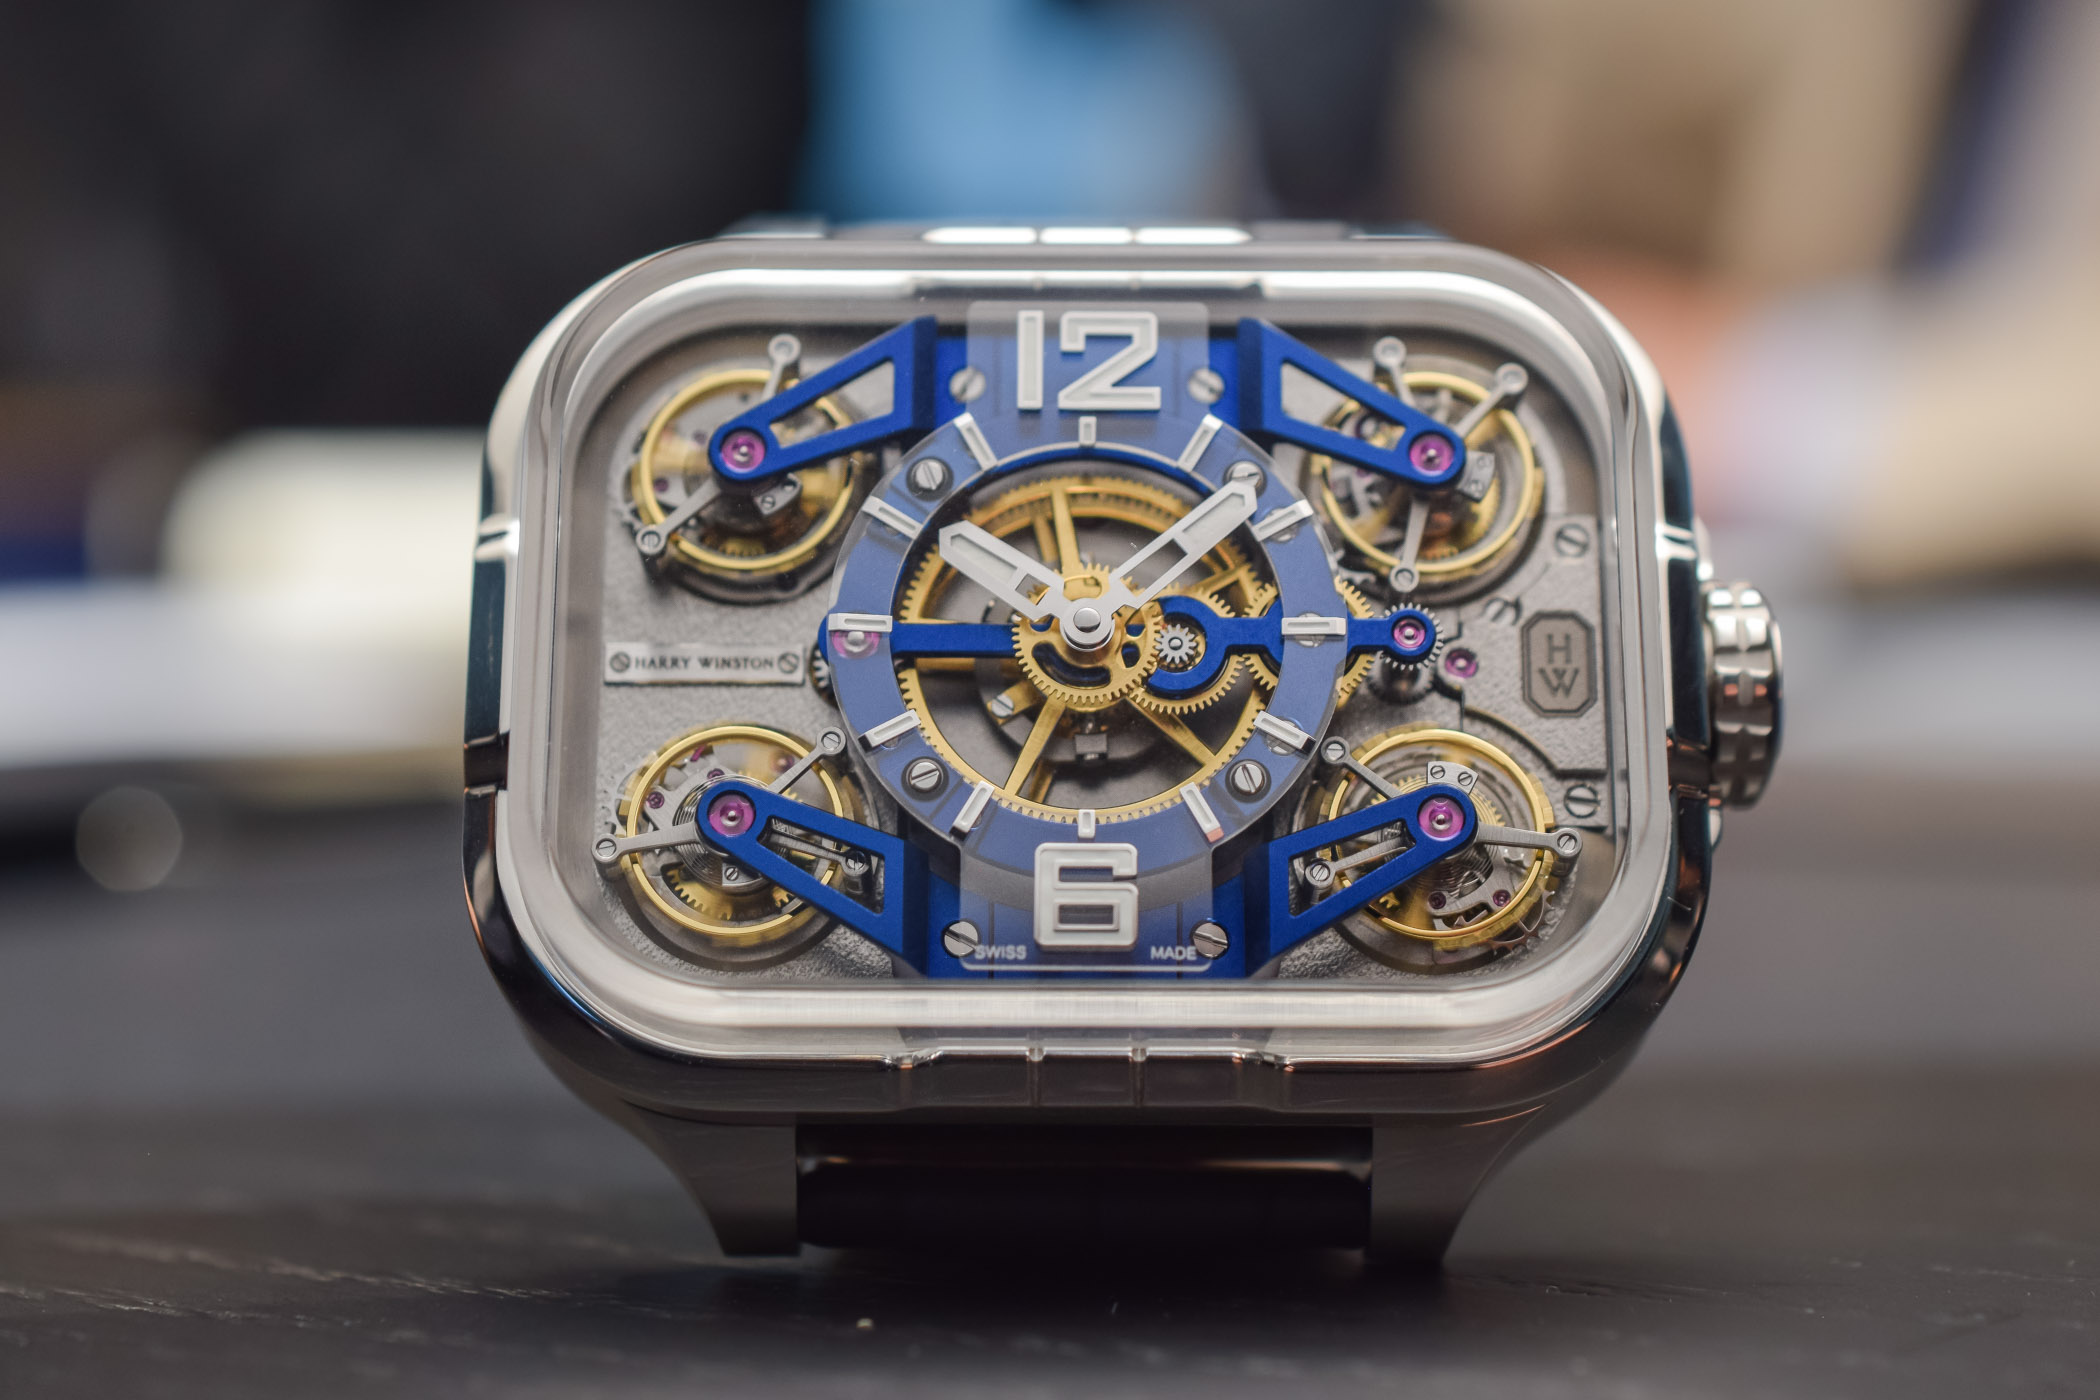 Harry Winston Histoire de Tourbillon 10 - First Watch Ever with 4 Tourbillons